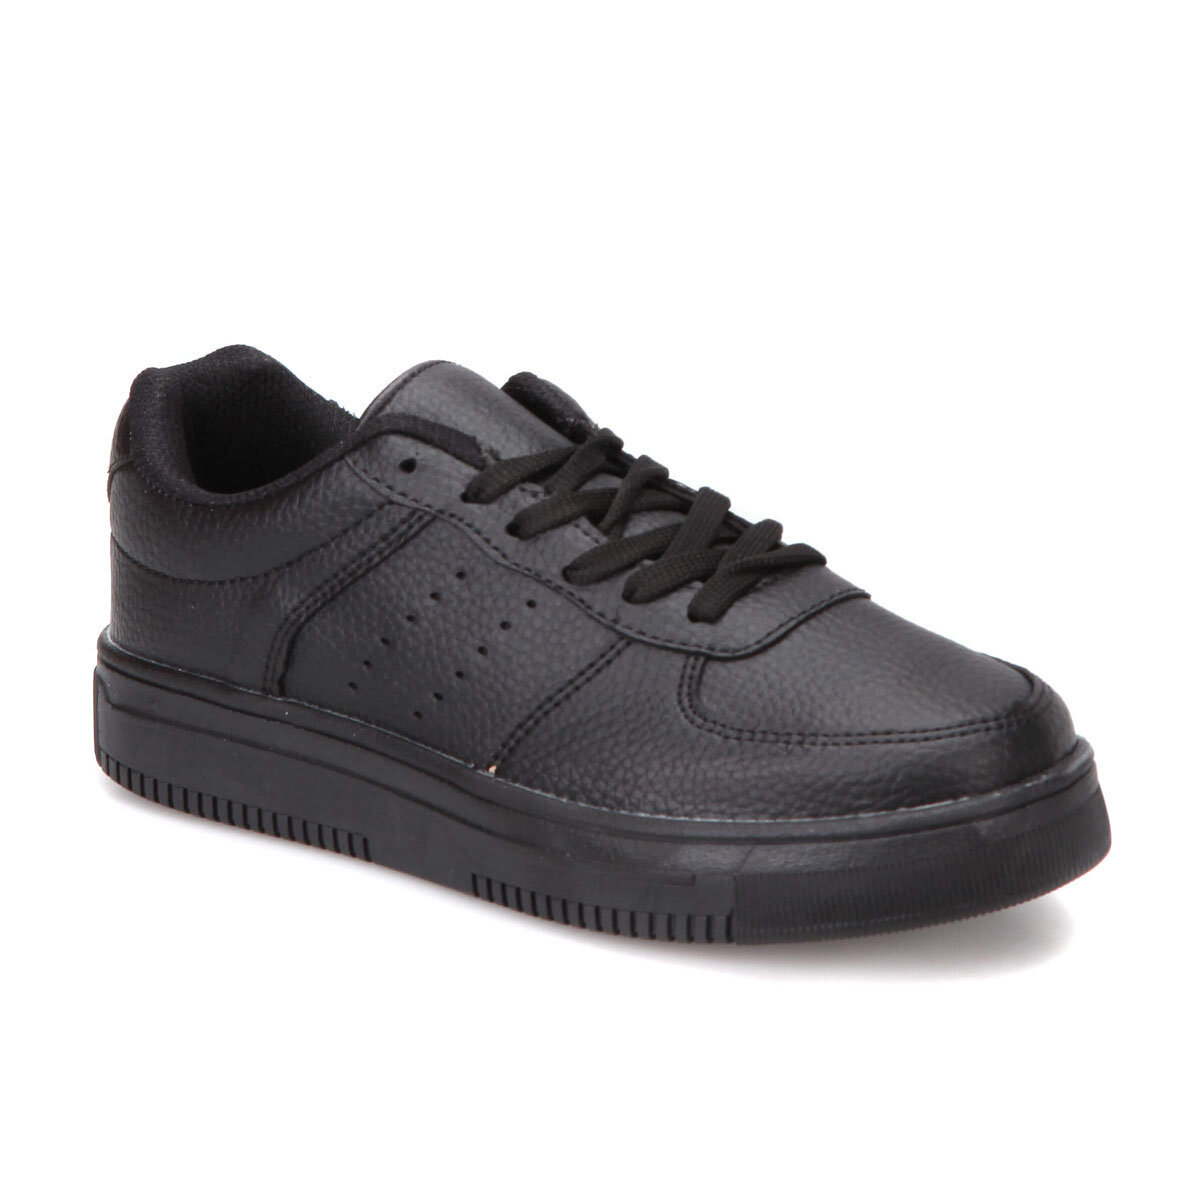 FLO JODER Black Men 'S Sneaker Shoes Torex